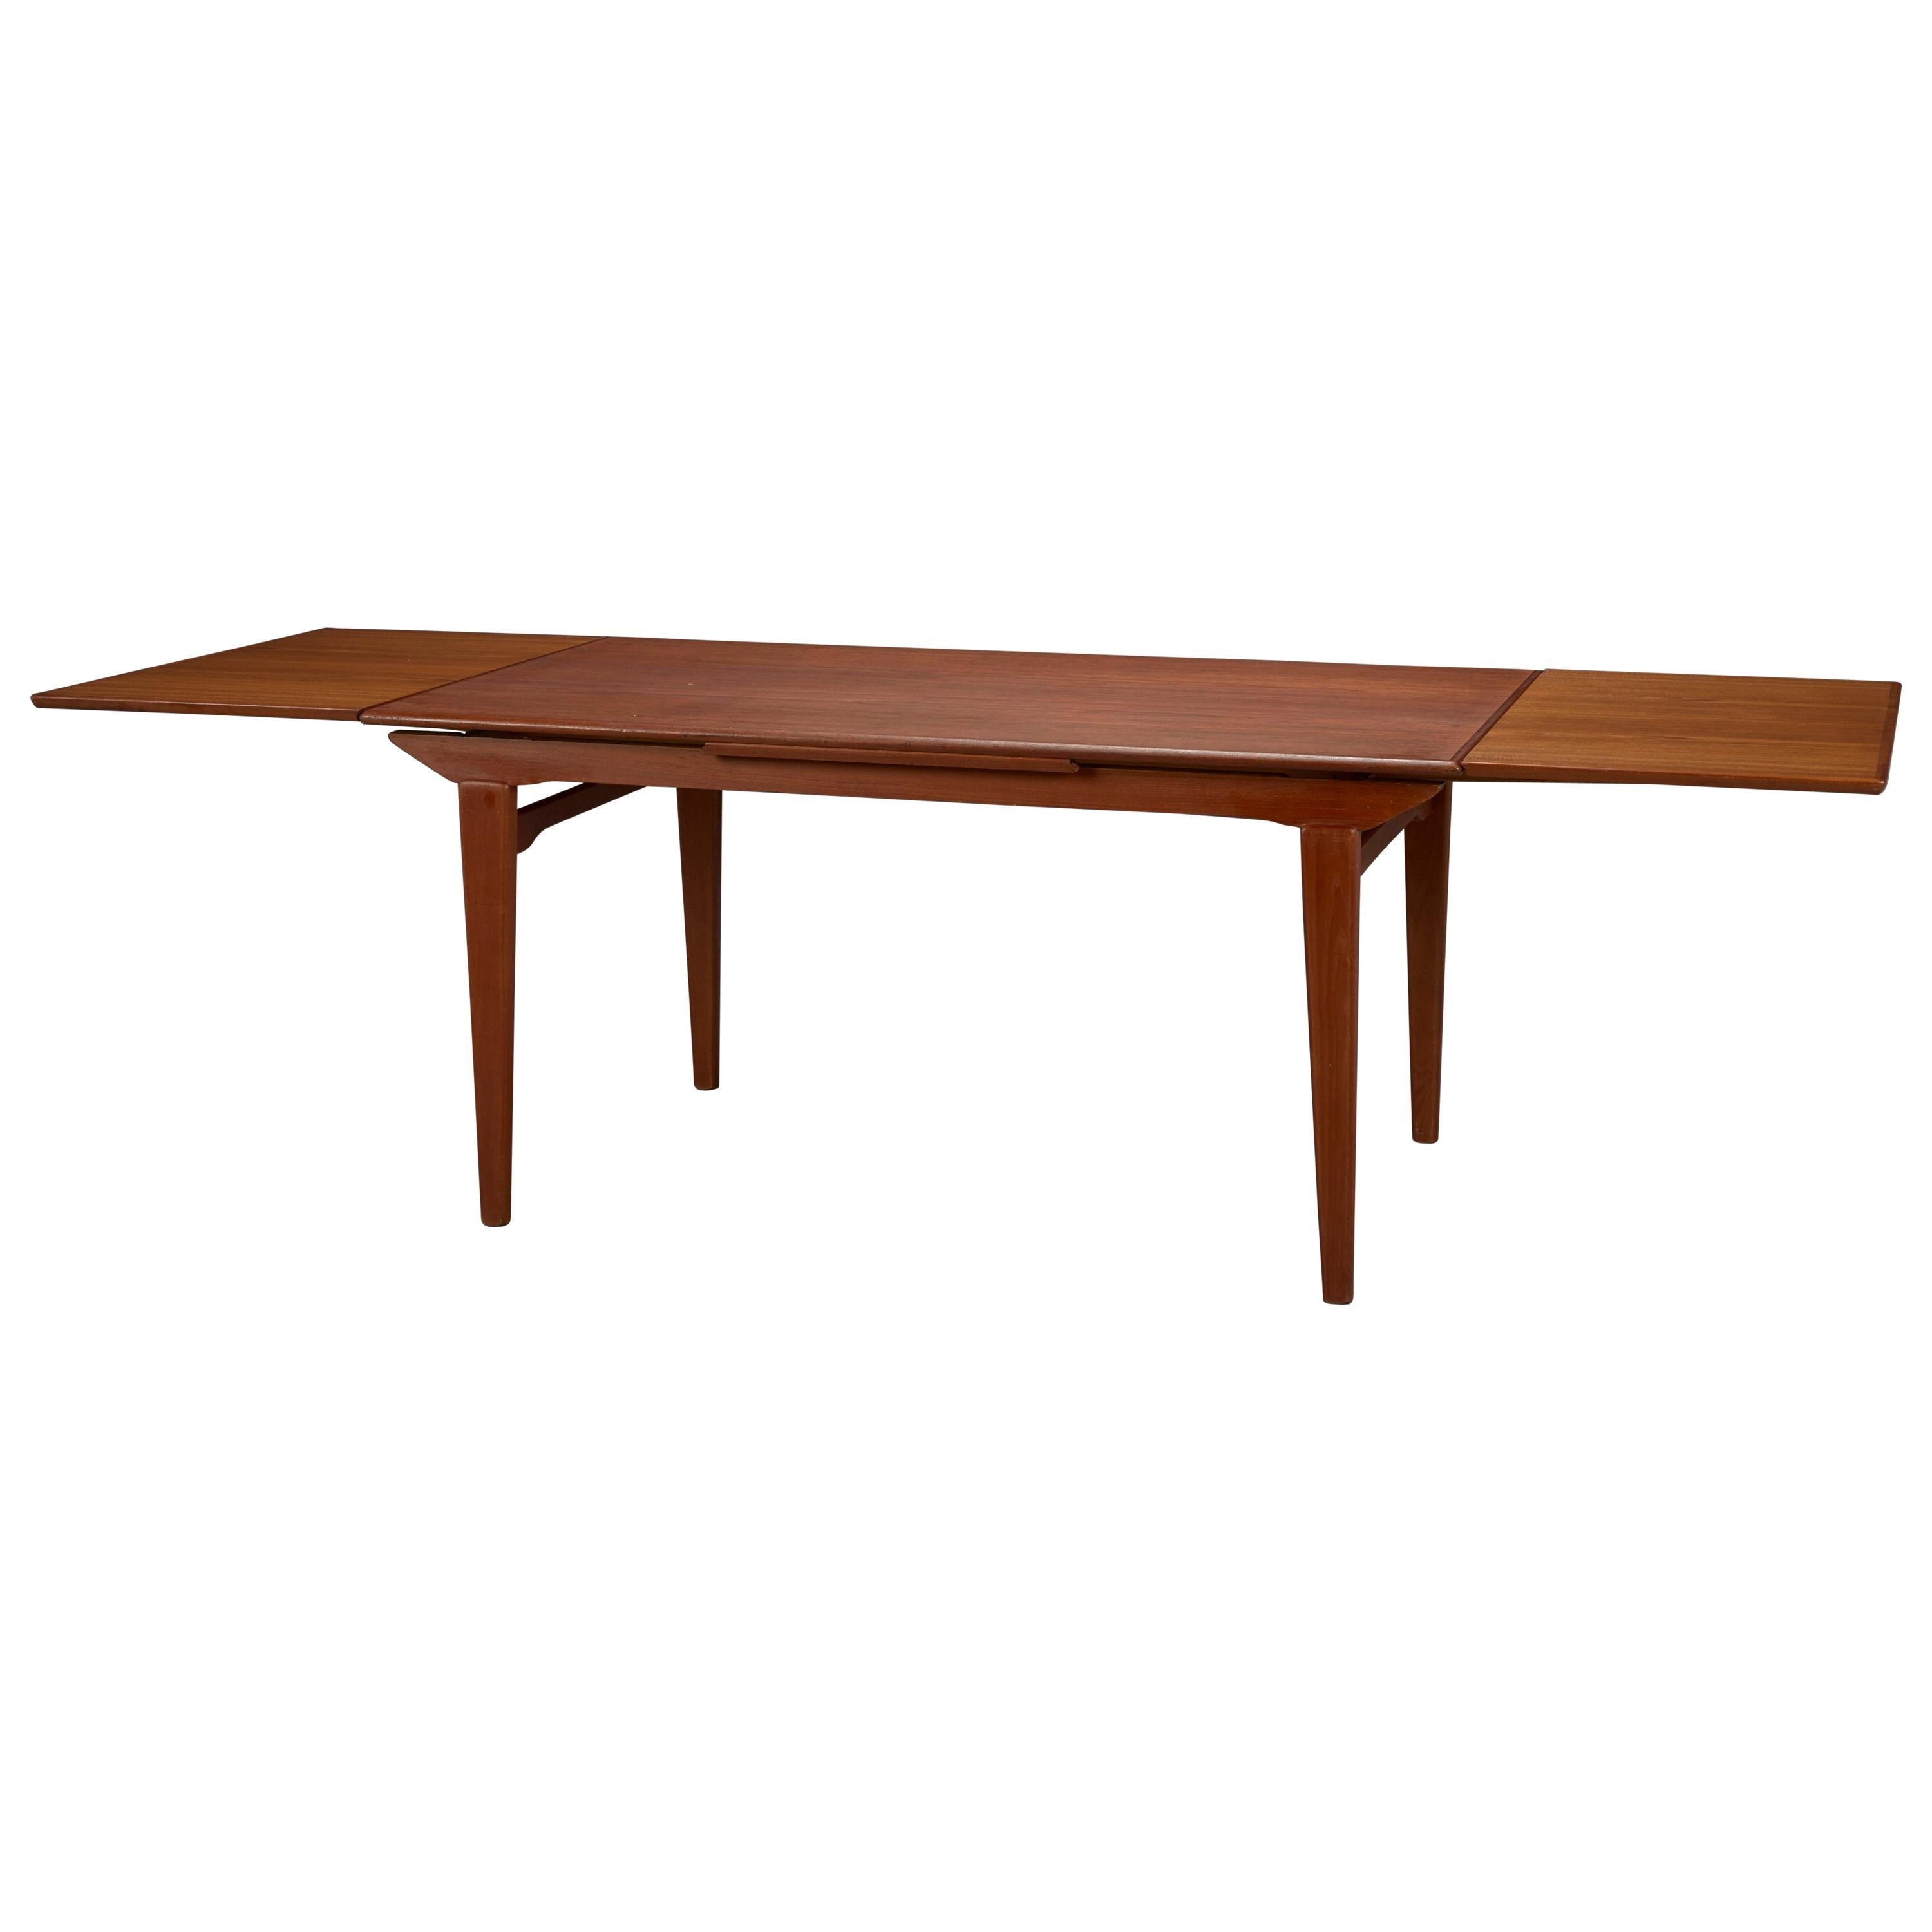 Danish Modern Dining Table with Two Pull-Out Leaves